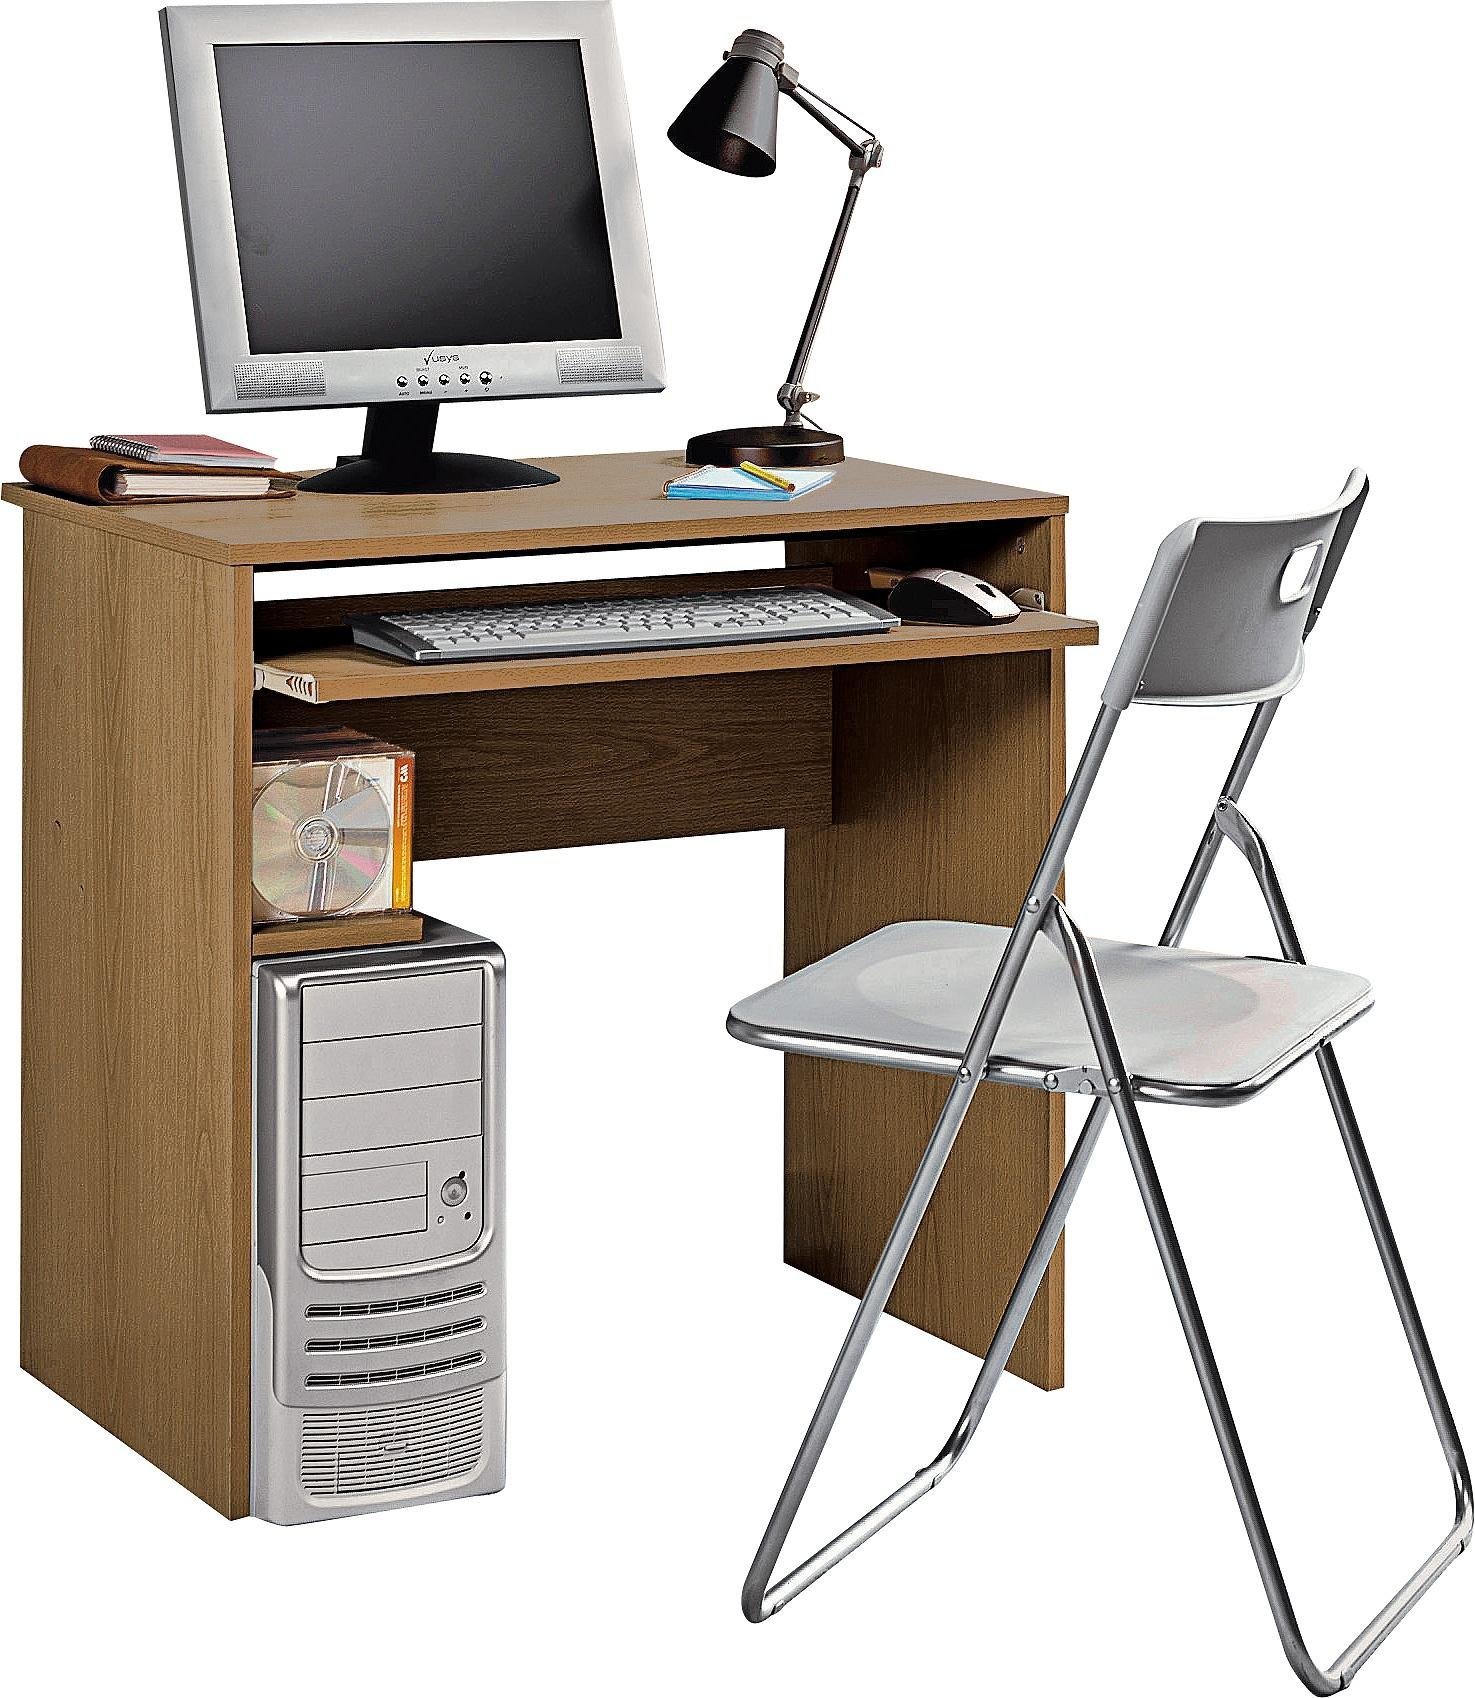 buy home office desk and chair set - oak effect at argos.co.uk